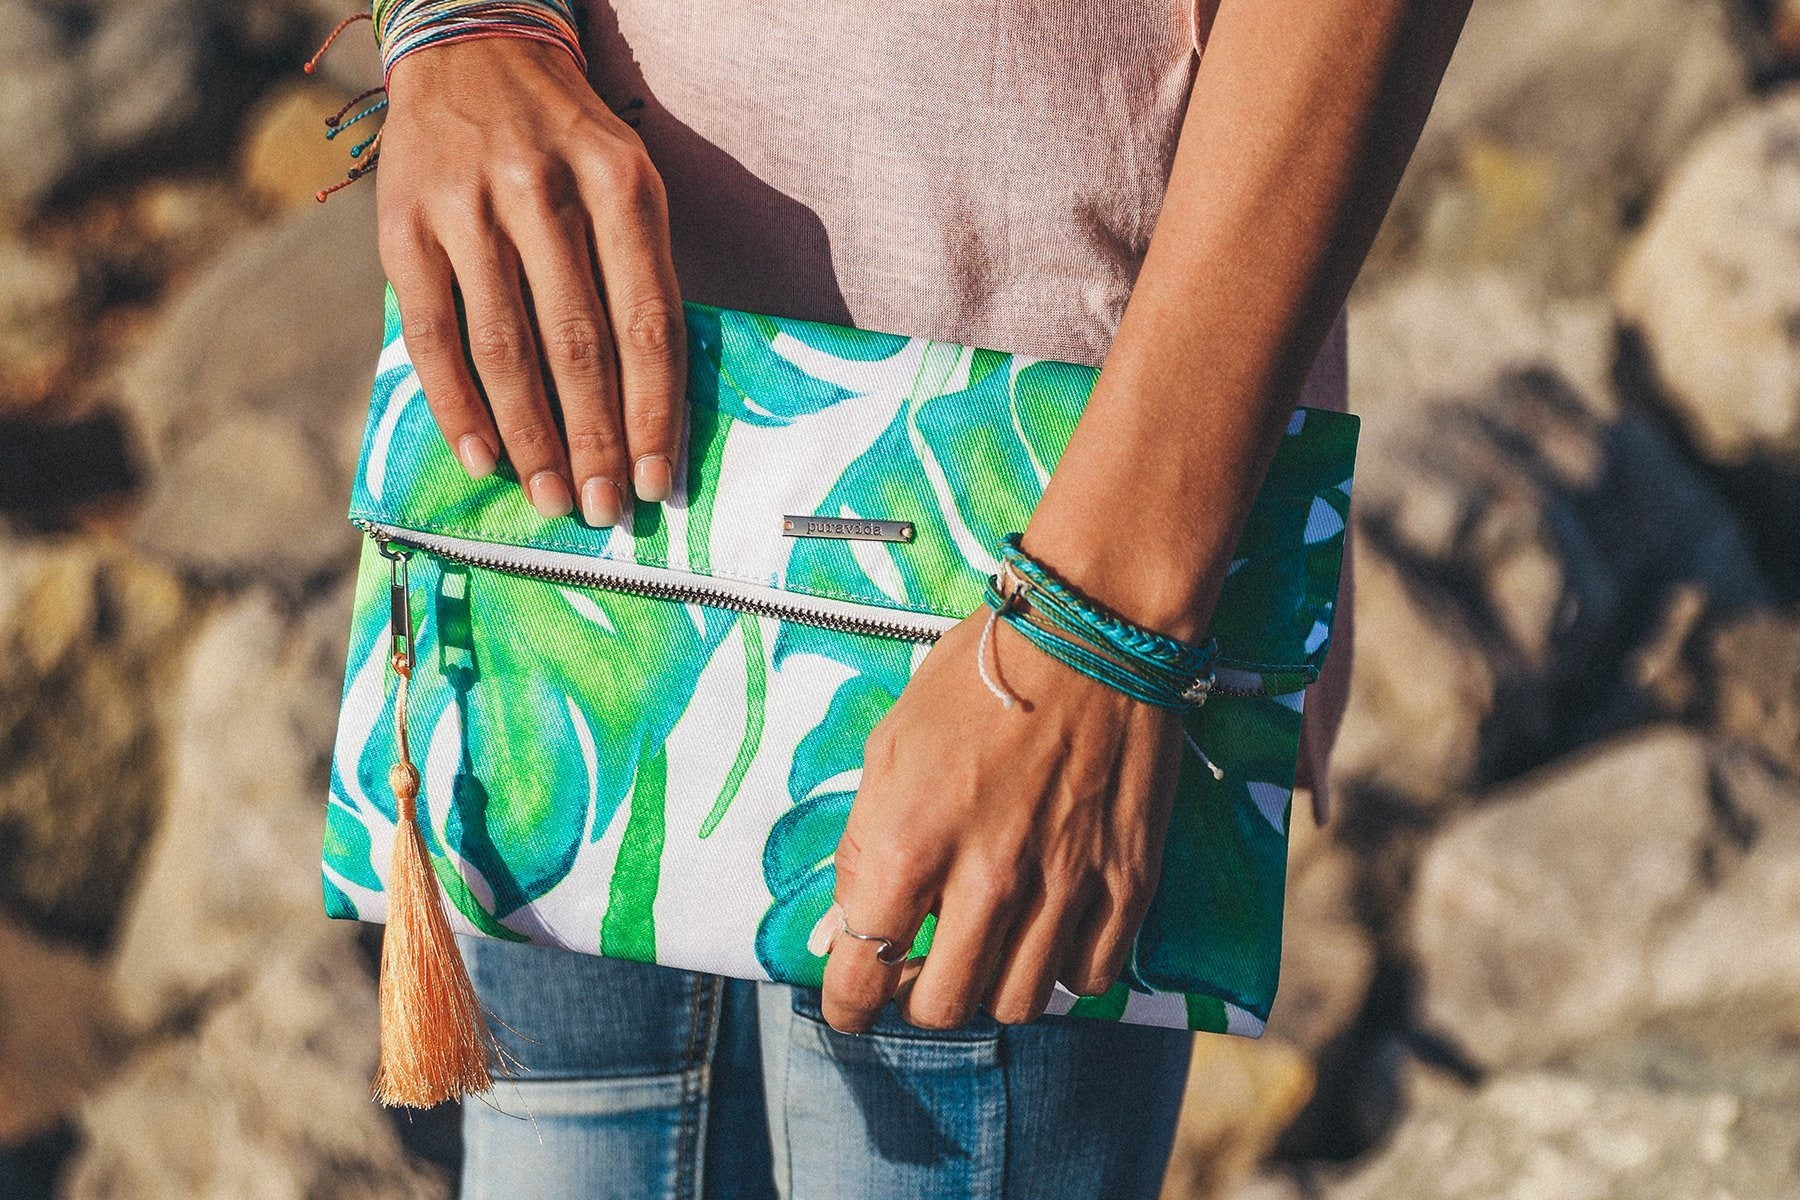 VIDA Leather Statement Clutch - Palm of Your Hand by VIDA 53lpiwetVT